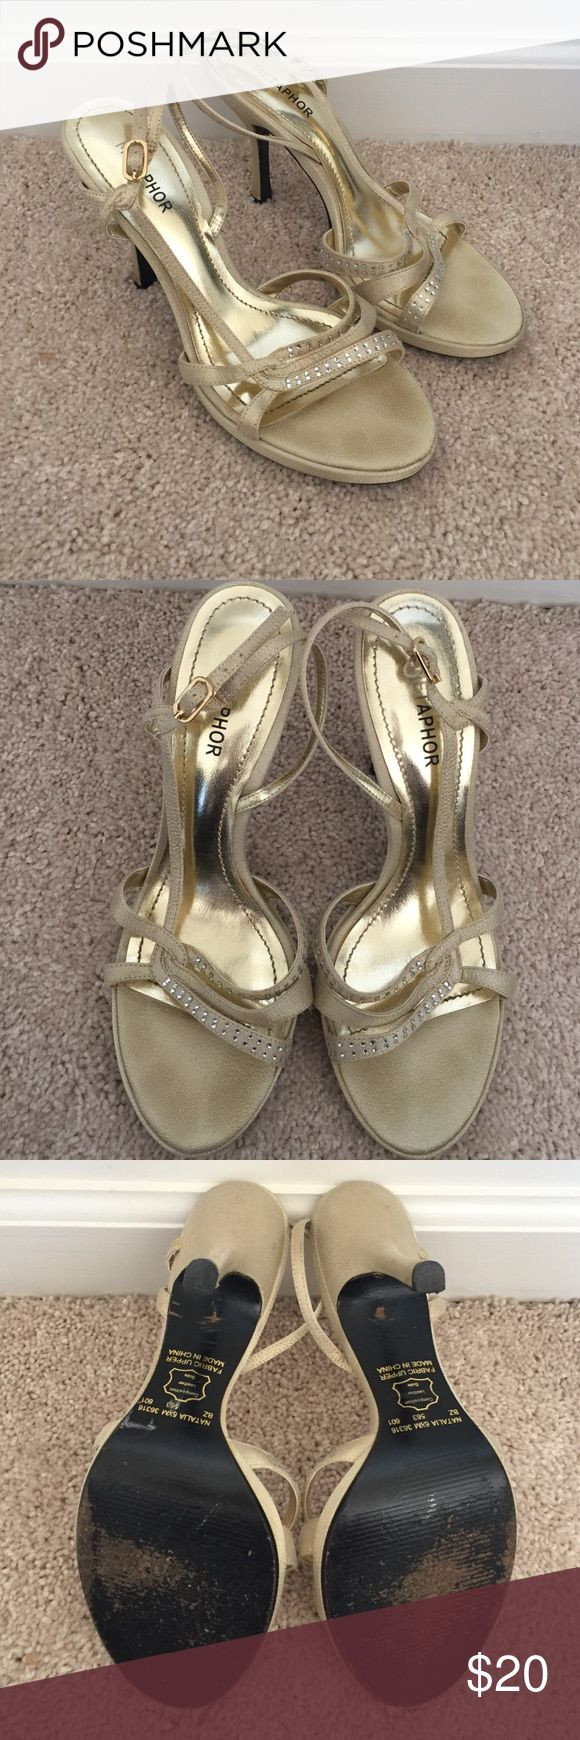 Gold Strappy Heels Gold strappy heels with silver rhinestones. Good condition. Great for weddings, prom, or homecoming. Metaphor Shoes Heels